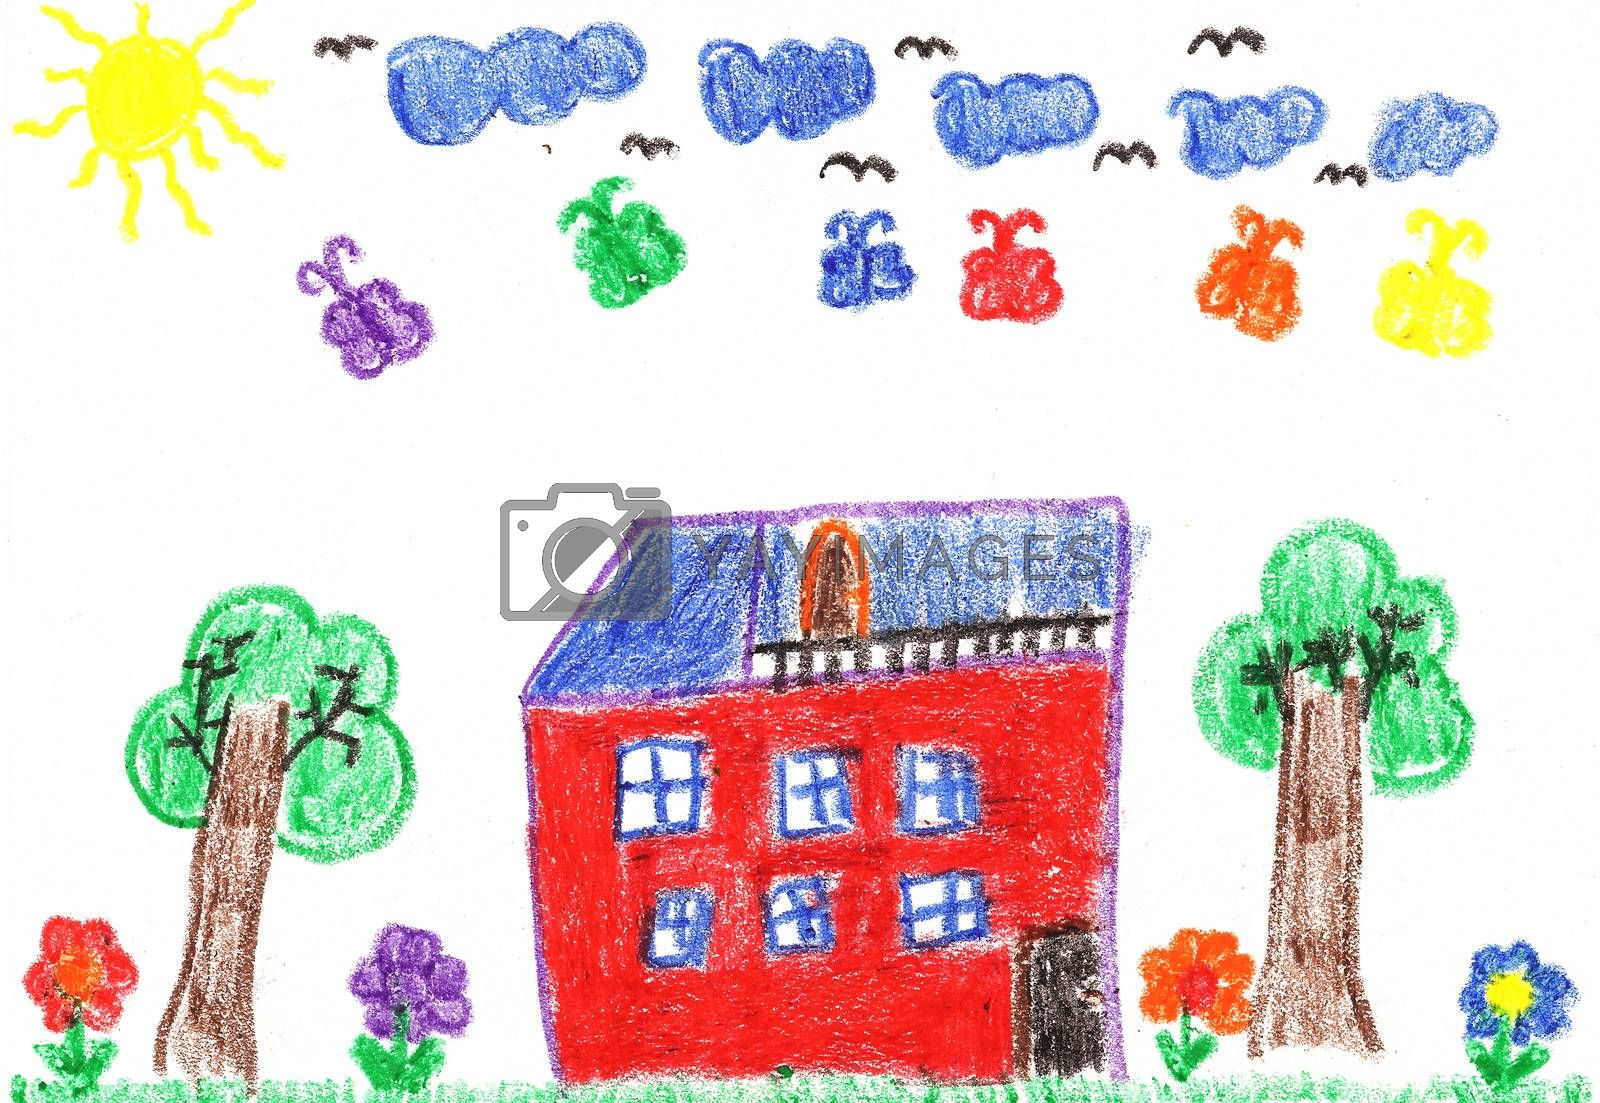 Child's drawing of a country house